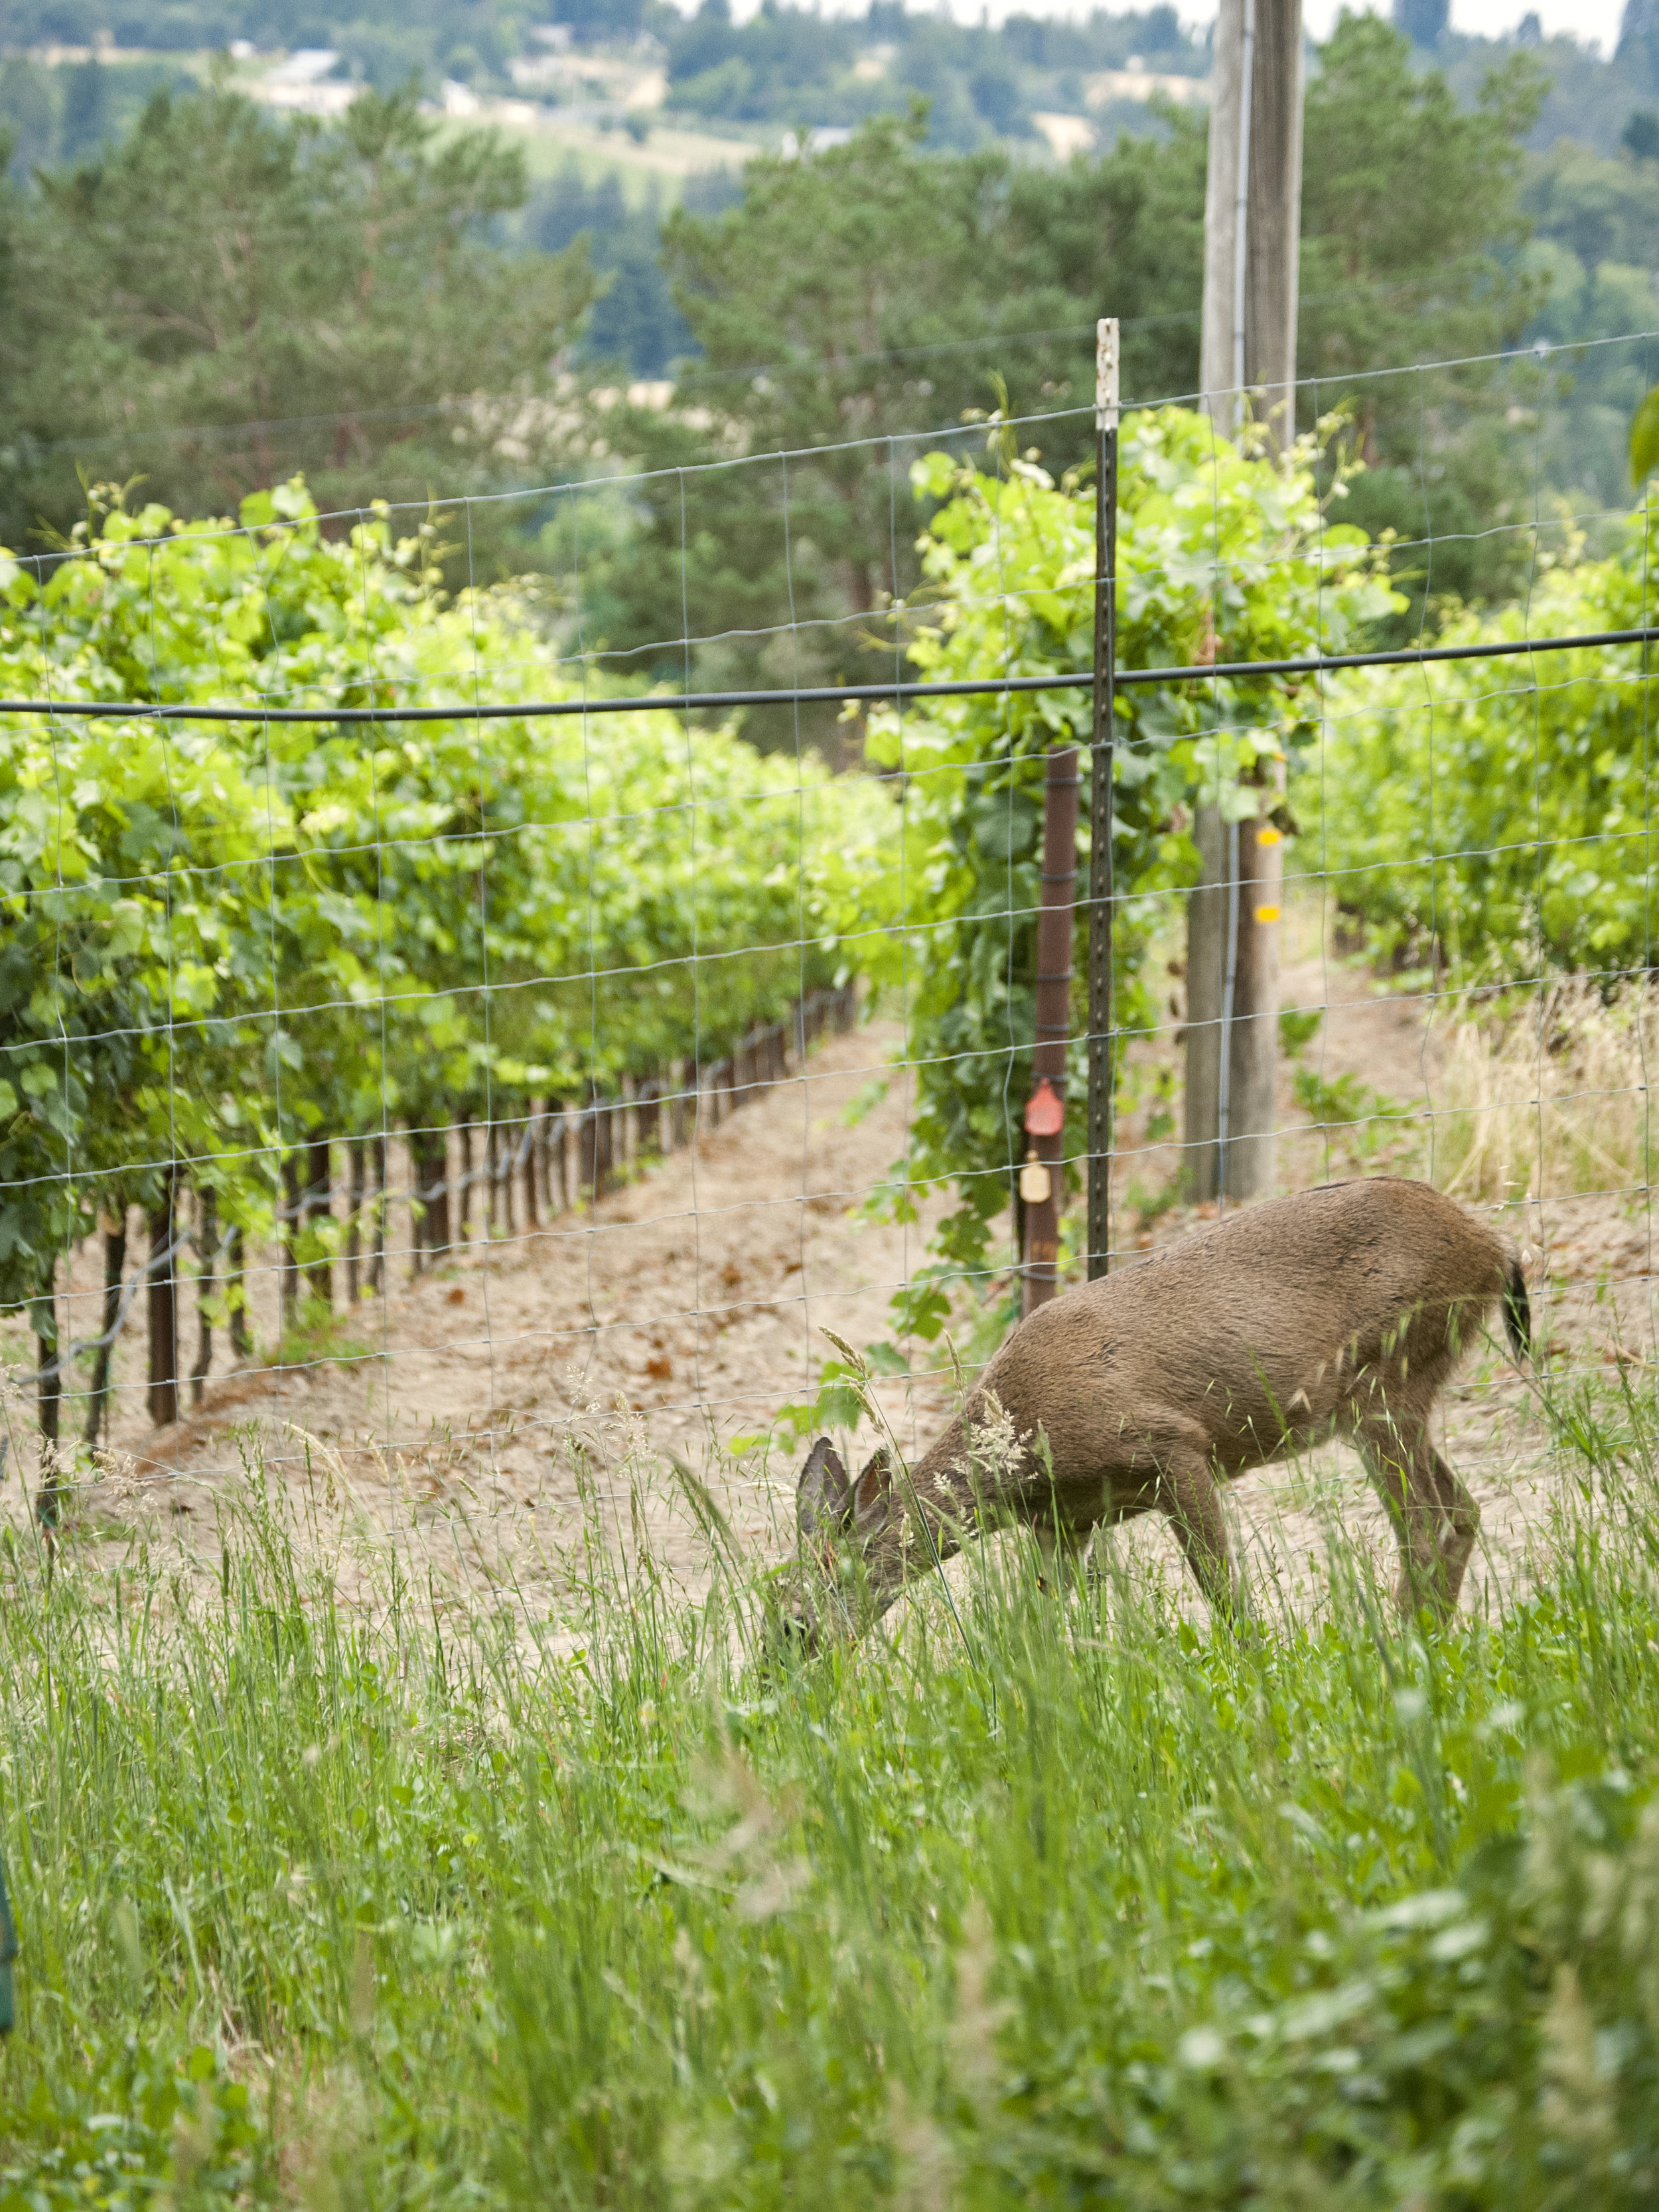 deer on the vineyard